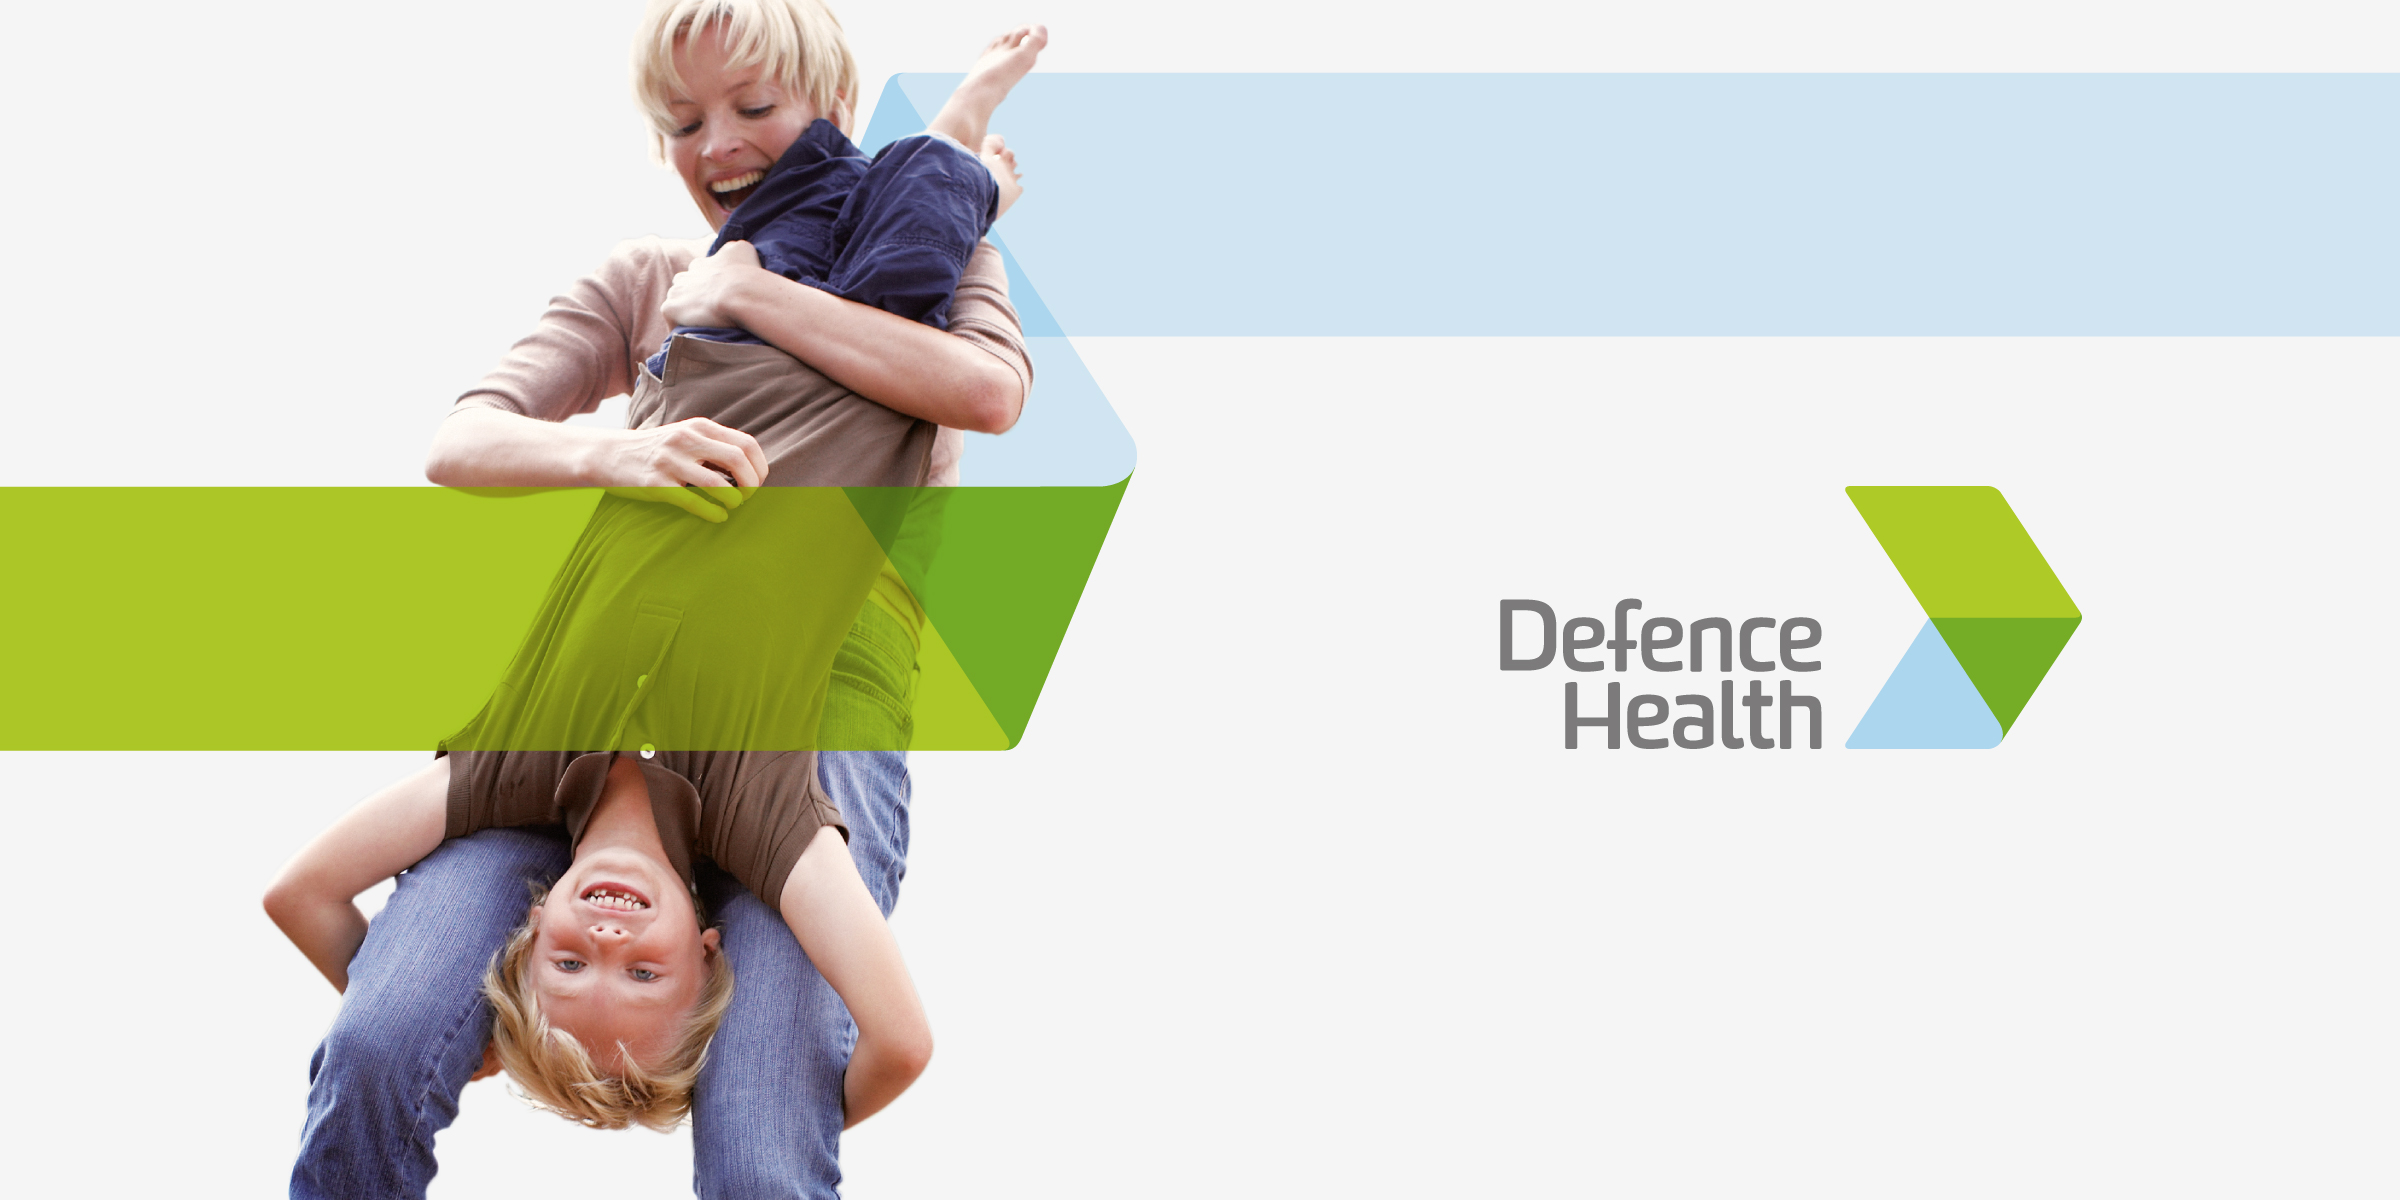 Defence Health Brand Identity, Brand Strategy and Design Parent and Child Playing